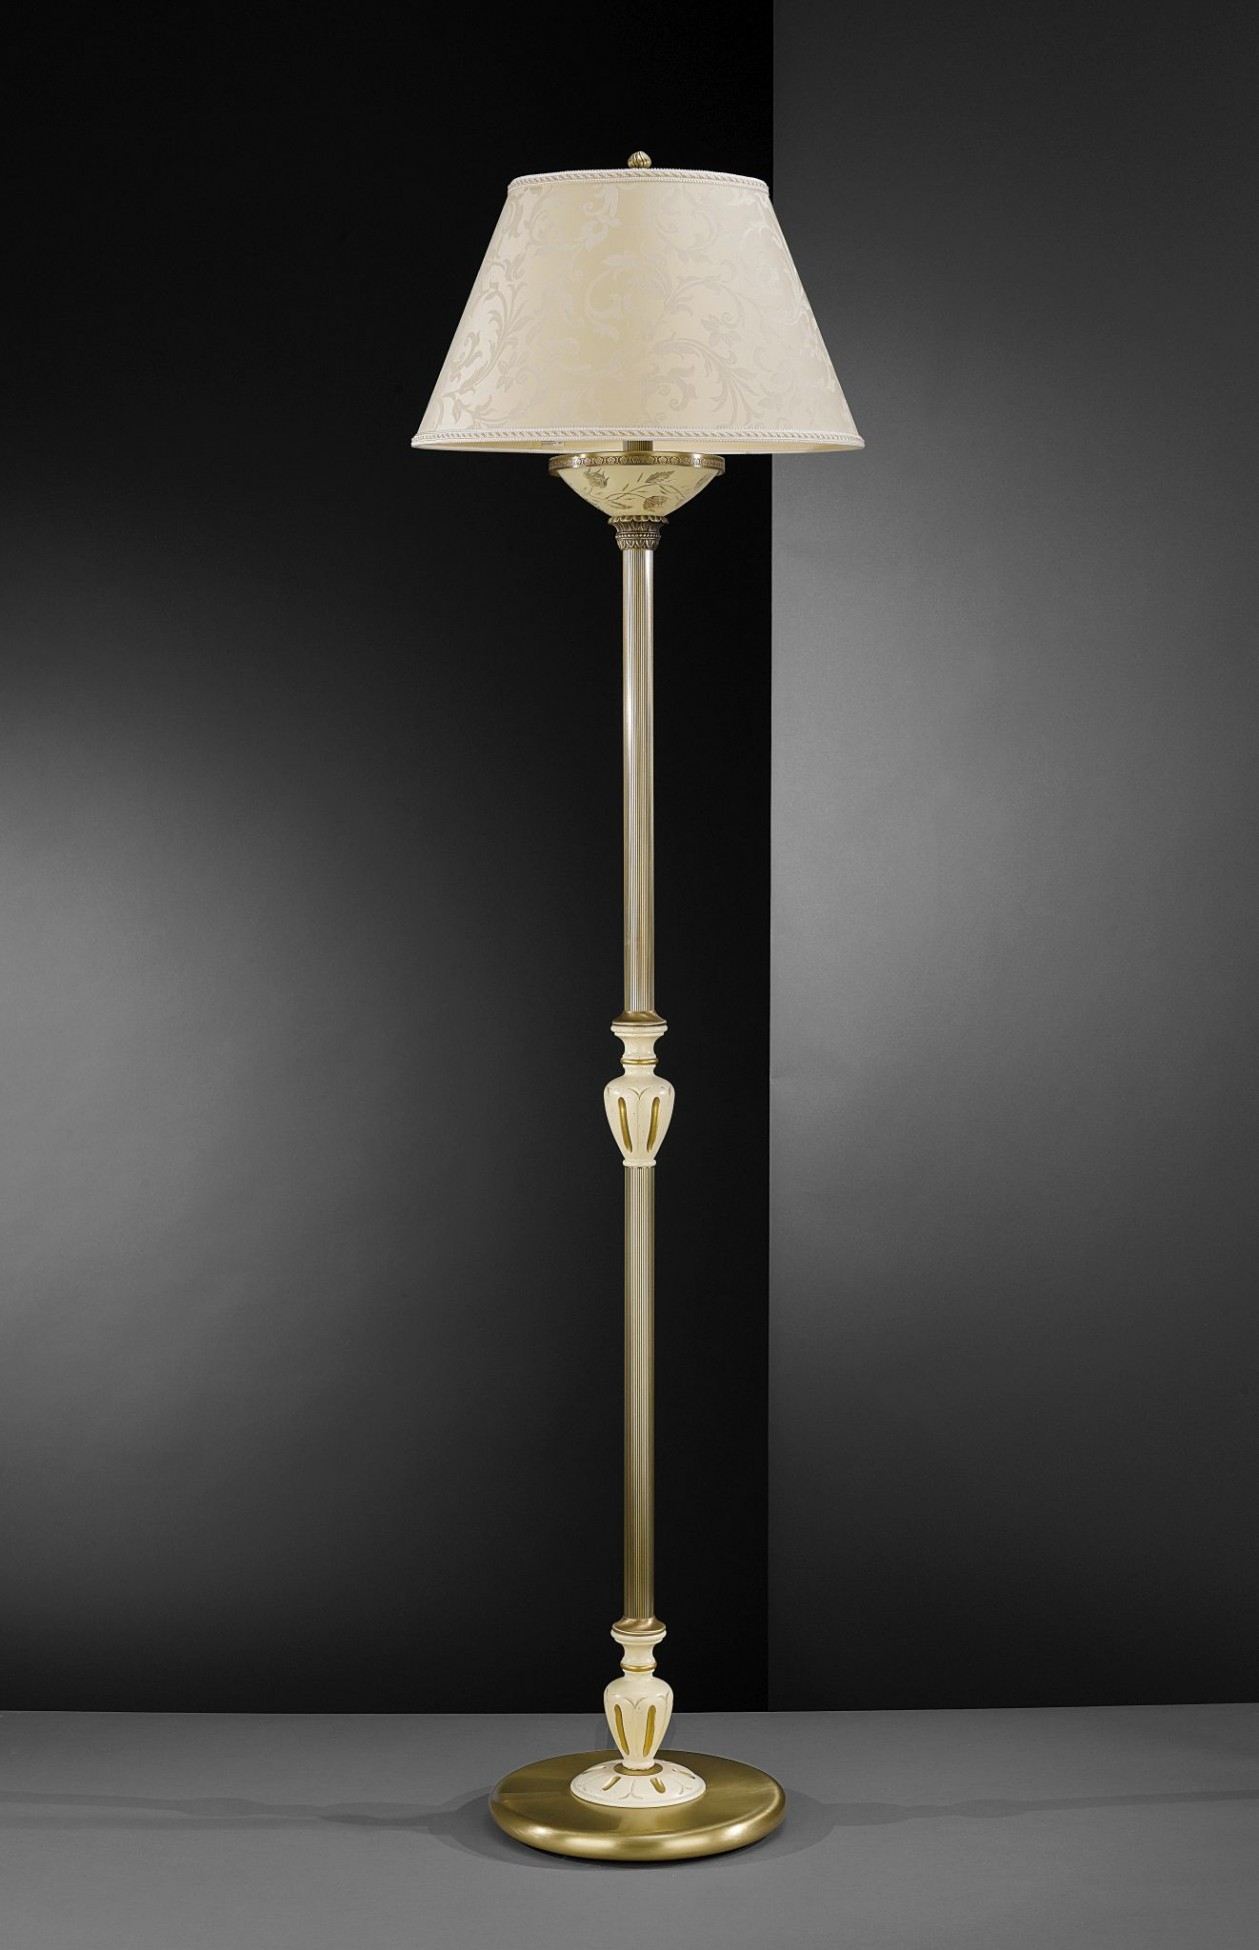 Brass Floor Lamp With Cream Engraved Glass And Lamp Shade